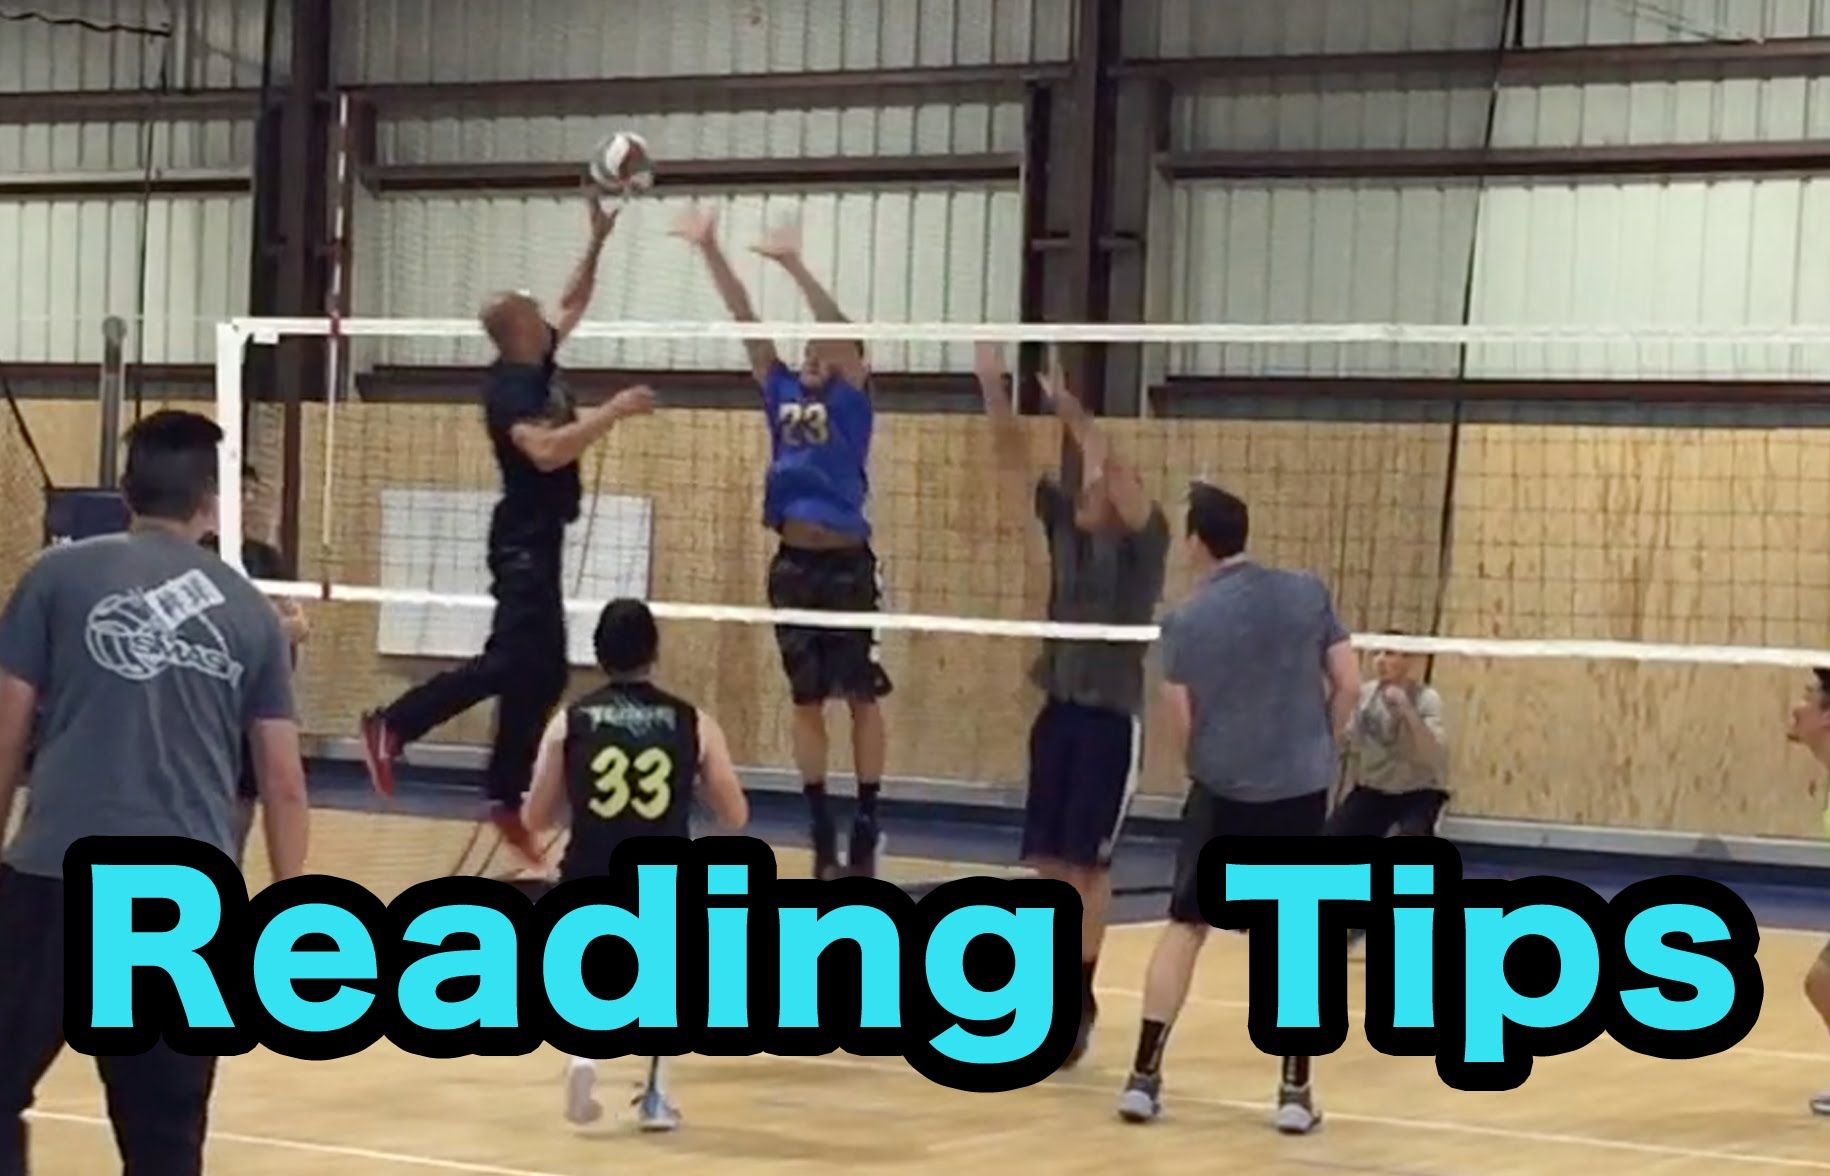 Reading Tips How To Read Hitters Part 2 2 Volleyball Defense Tutorial Volleyball Skills Volleyball Training Volleyball Drills